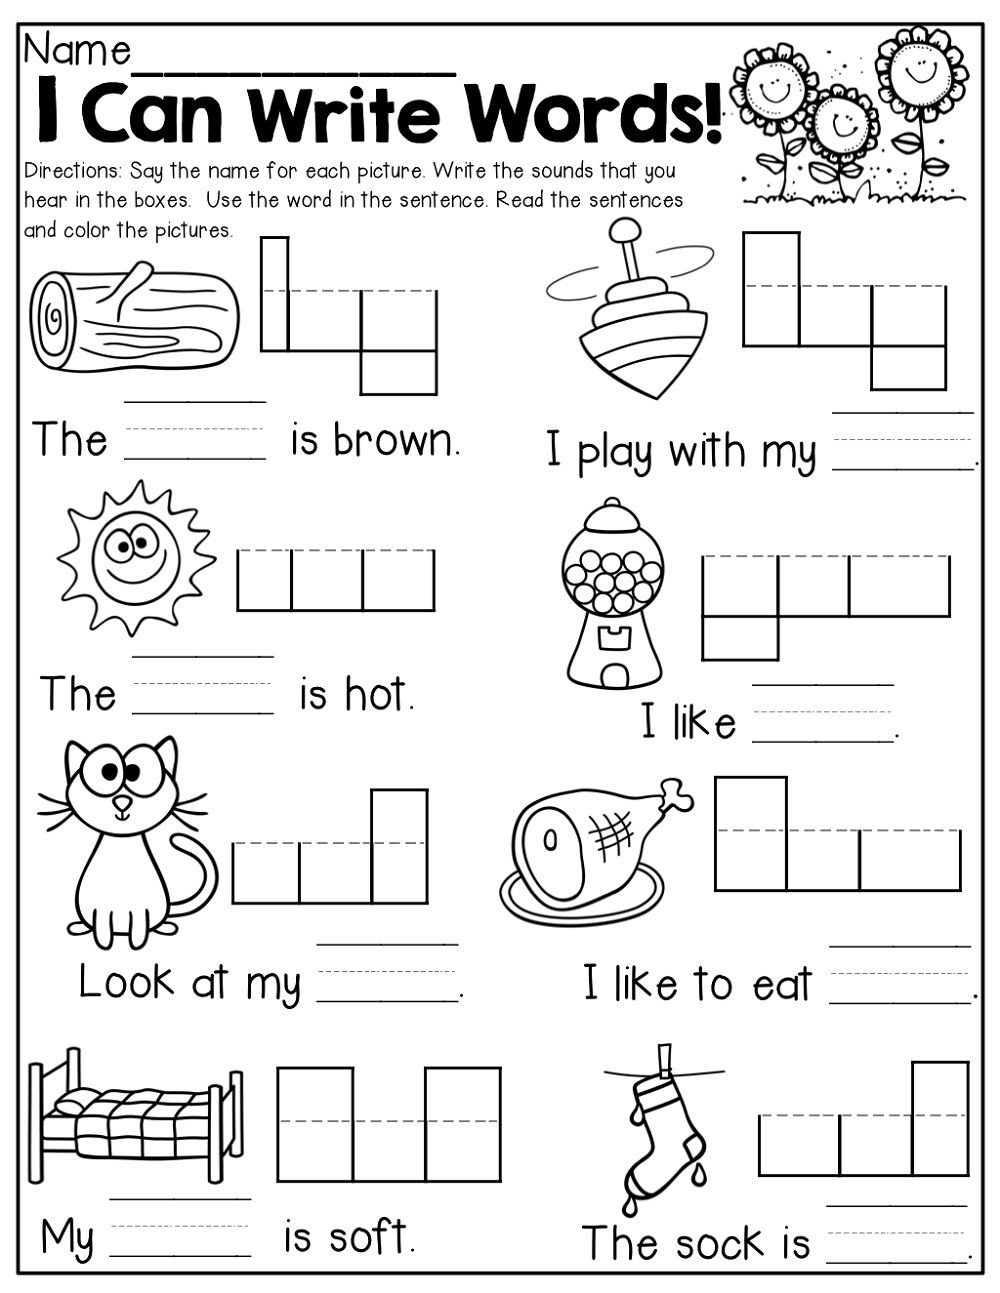 Free Printable Worksheets For 5 Year Olds Educative Printable Kindergarten Language Kindergarten Language Arts Kindergarten Writing Reading and writing worksheet for